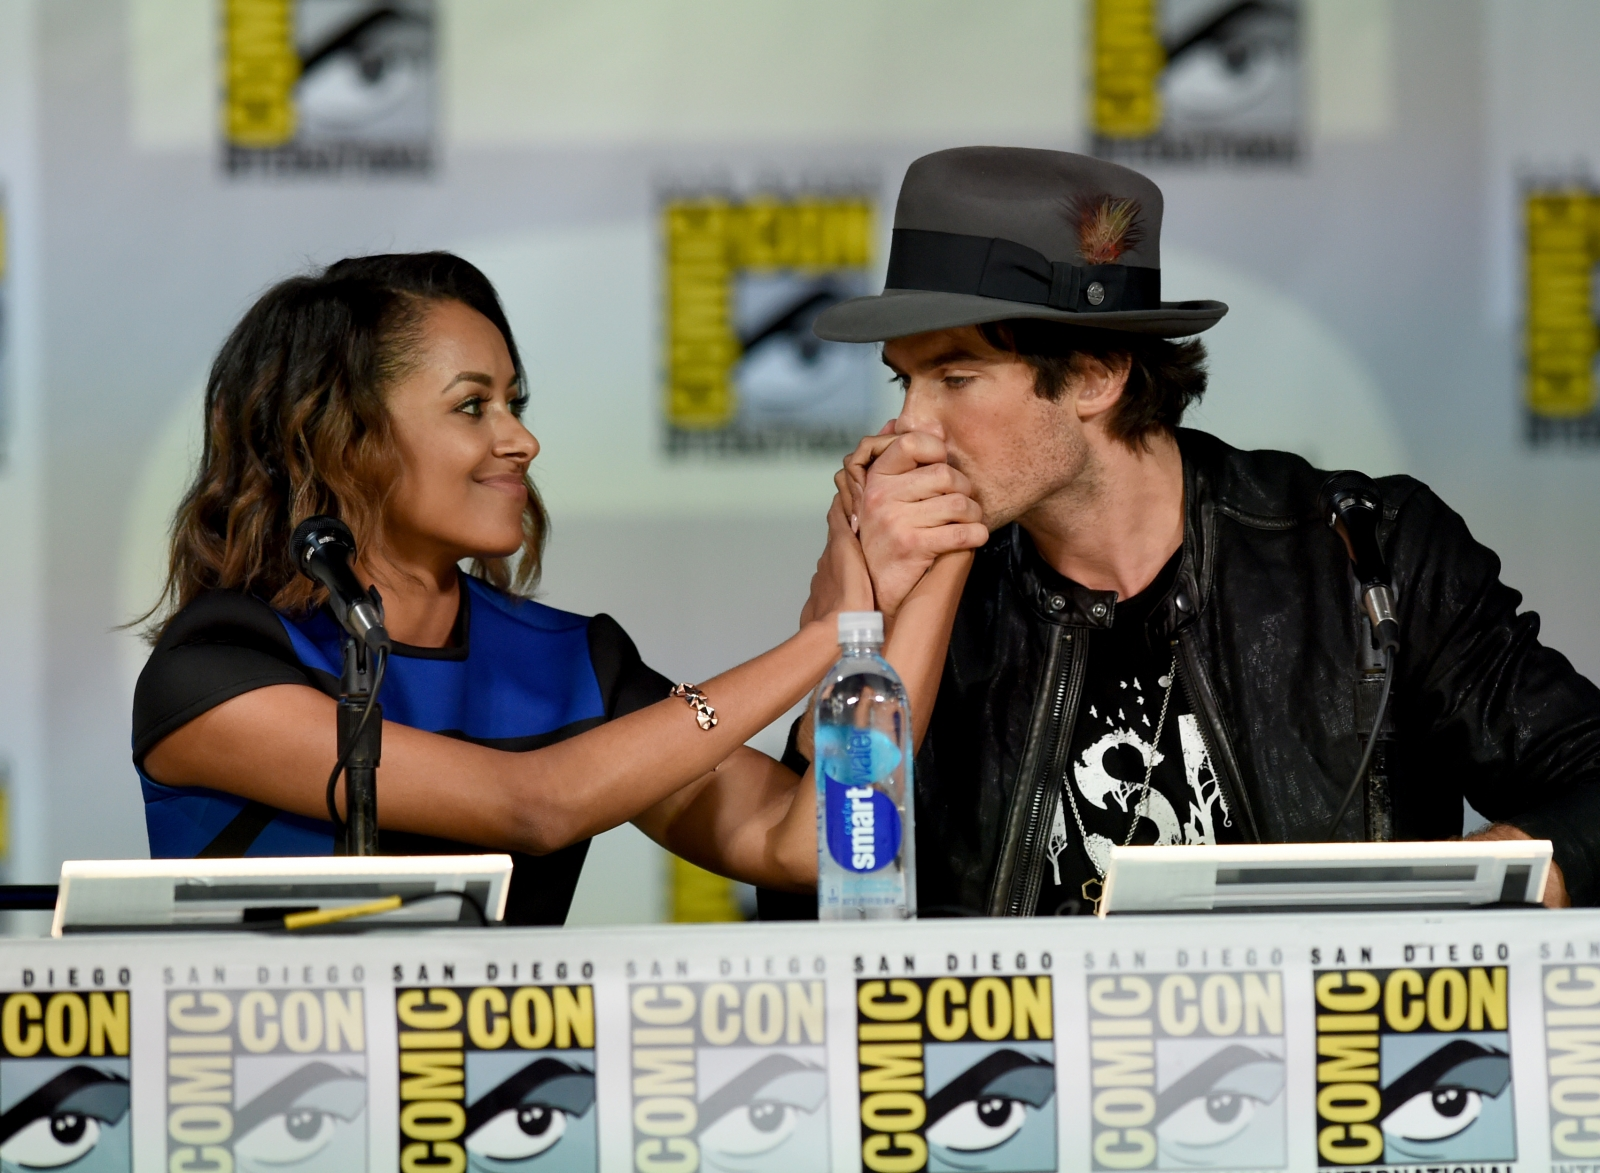 """vampire diaries hook up The possibility of bonnie-damon or """"bamon"""" romance in """"the vampire diaries"""" season 7 is not far-fetched in an interview with justjaredjr, ian somerhalder, who plays damon salvatore, said although his character wants elena back, damon will do anything to keep bonnie bennett alive because he doesn't want elena to get disappointed in."""